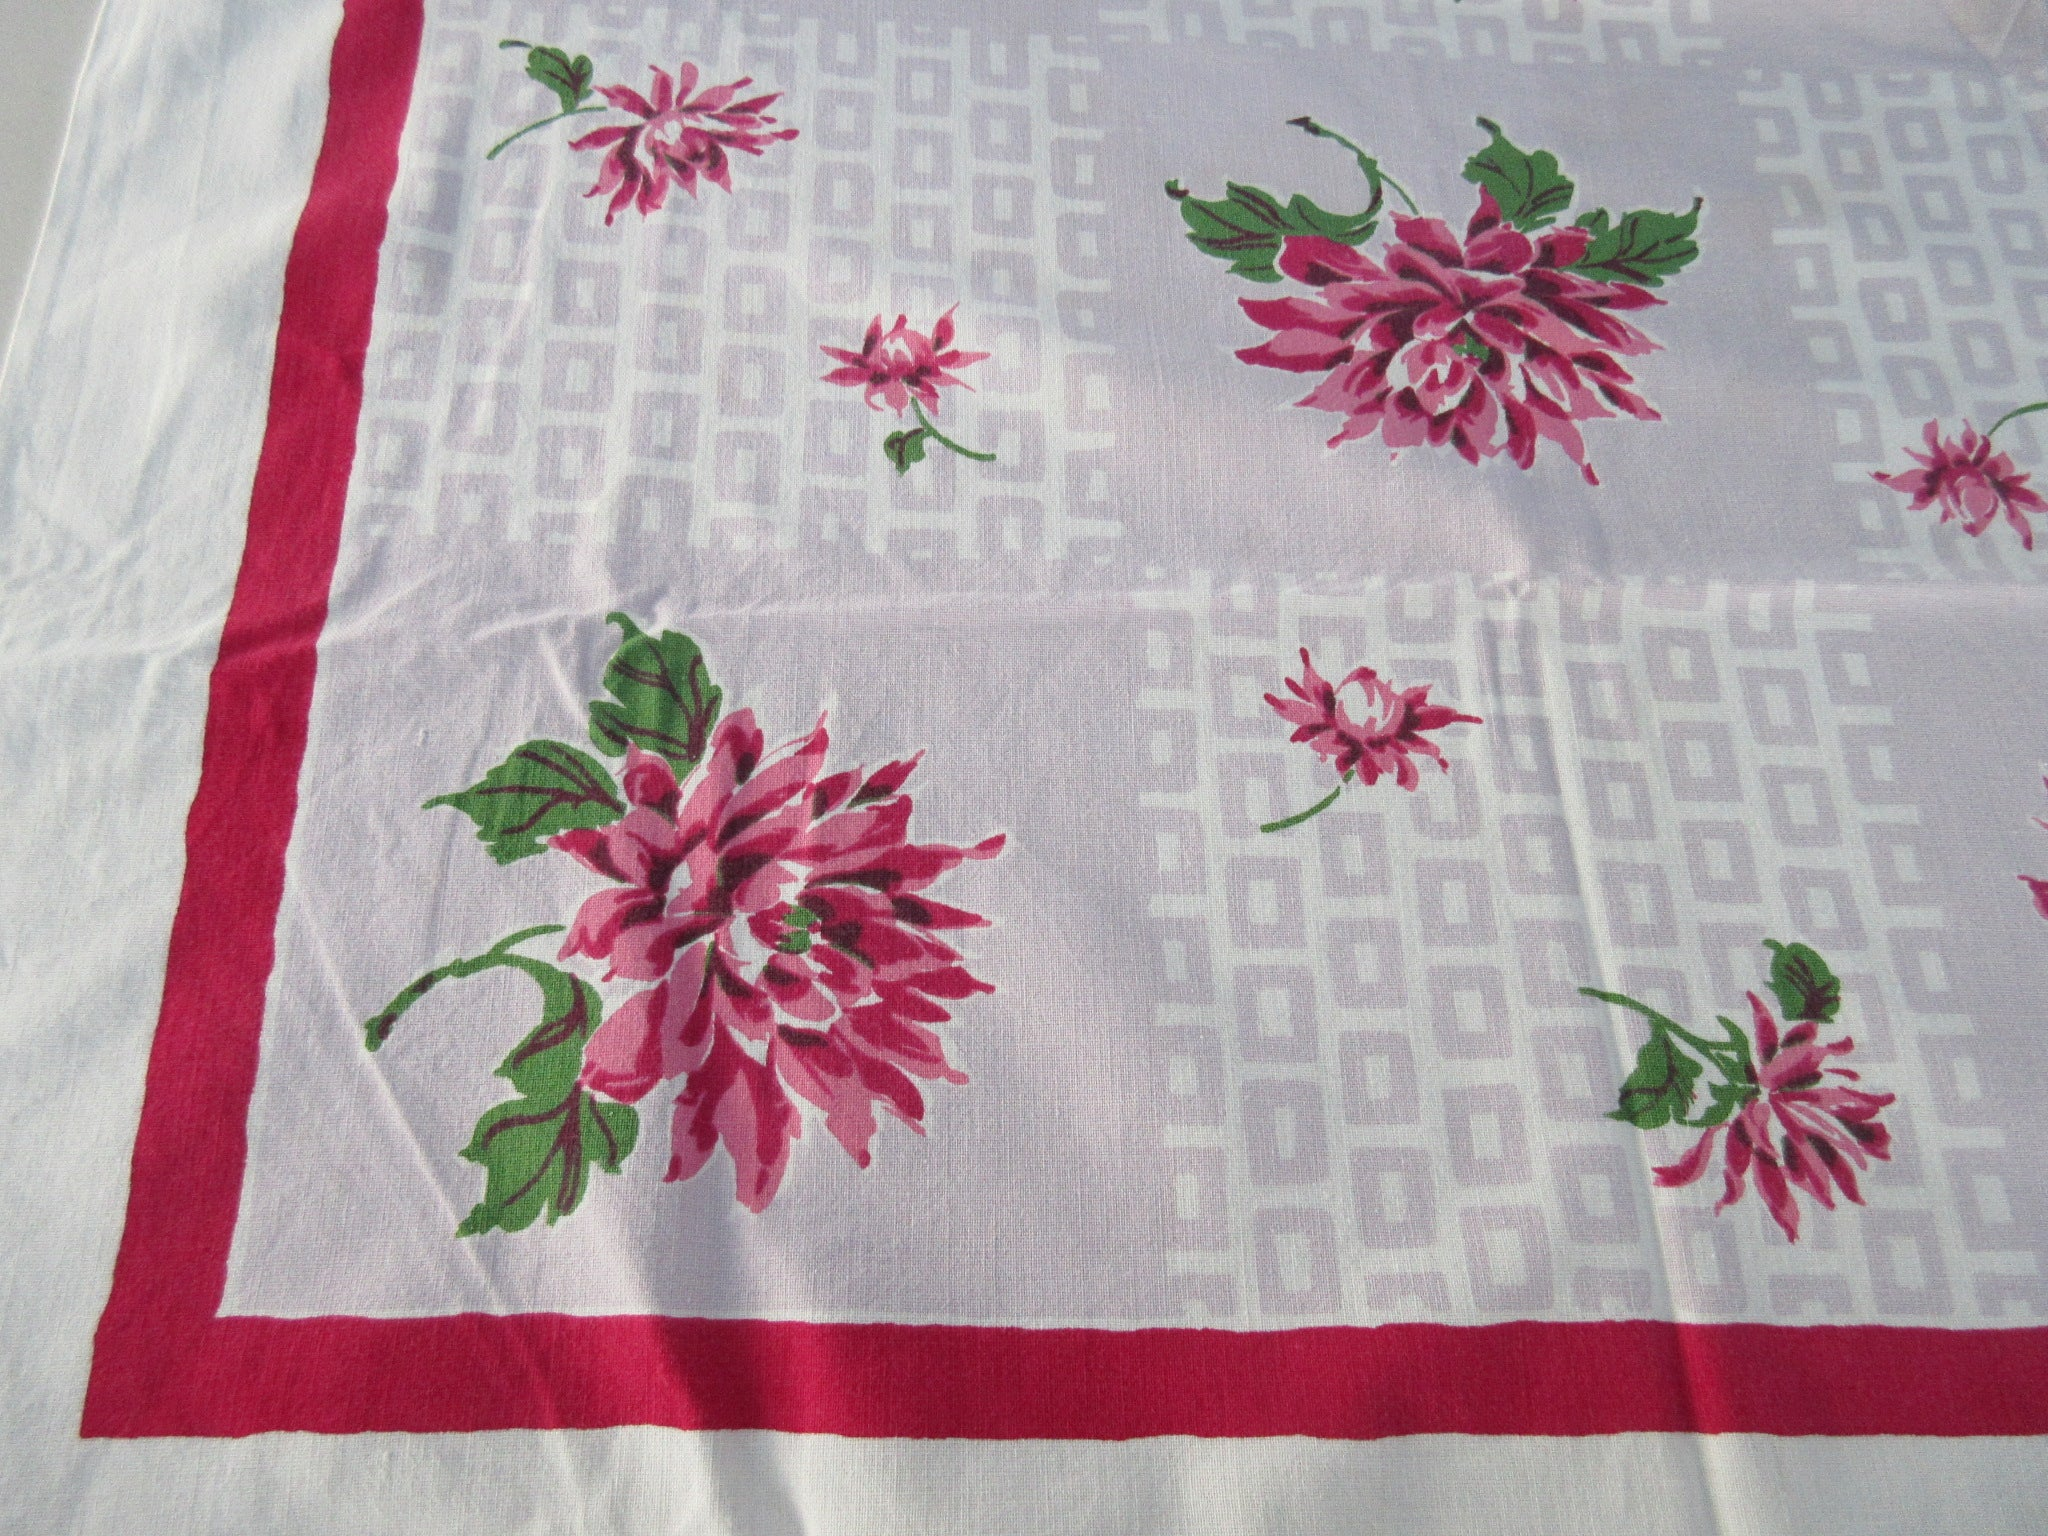 Startex Dahlias on Mauve Floral Vintage Printed Tablecloth (49 X 45)